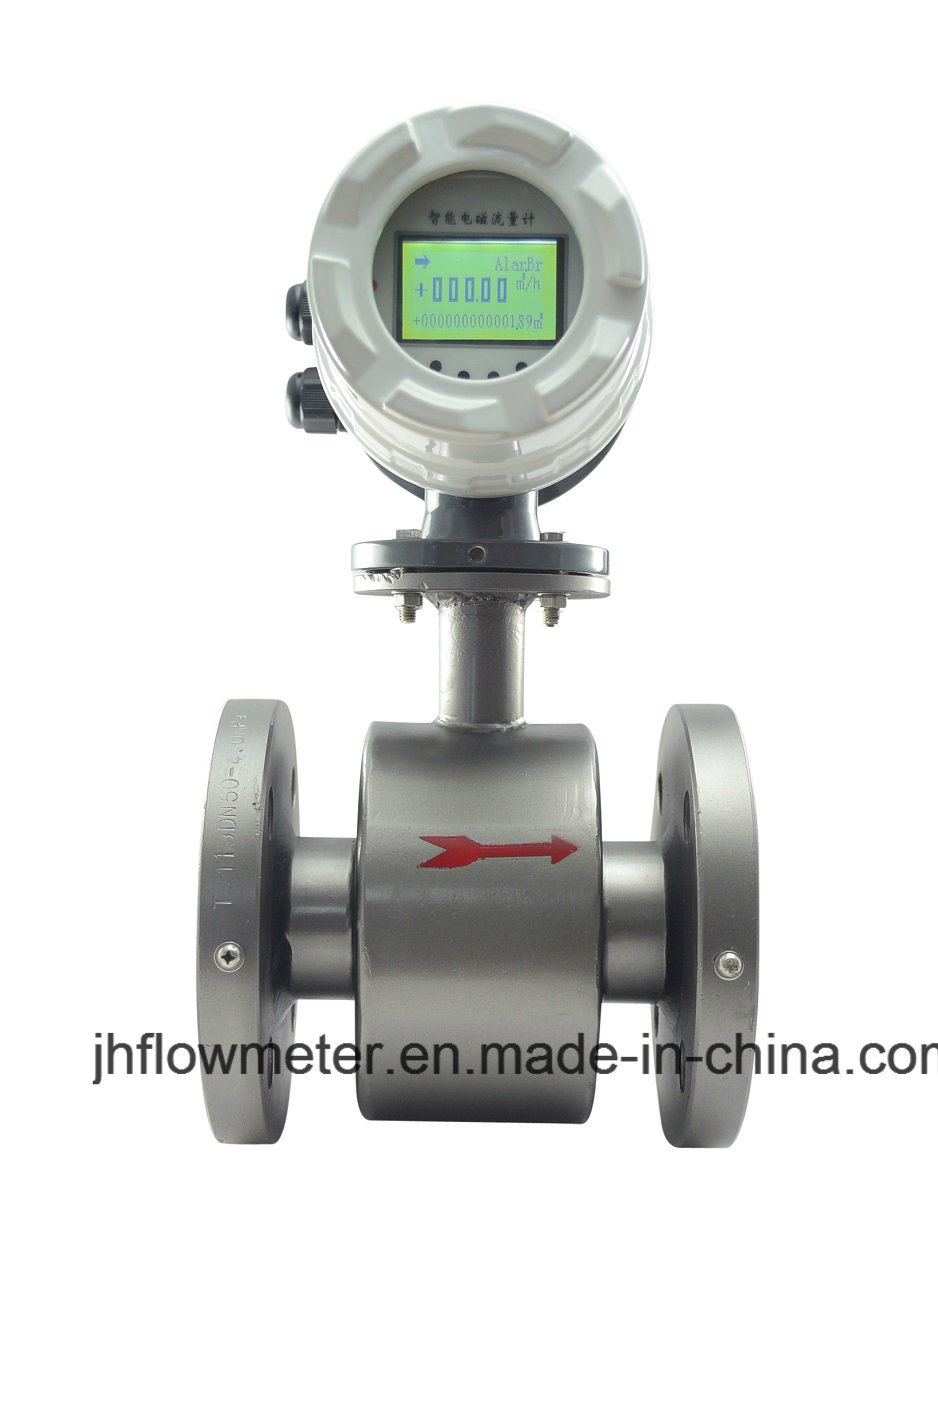 [Hot Item] Smart German Quality Endress+Hauser Wastewater Electromagnetic  Flowmeter